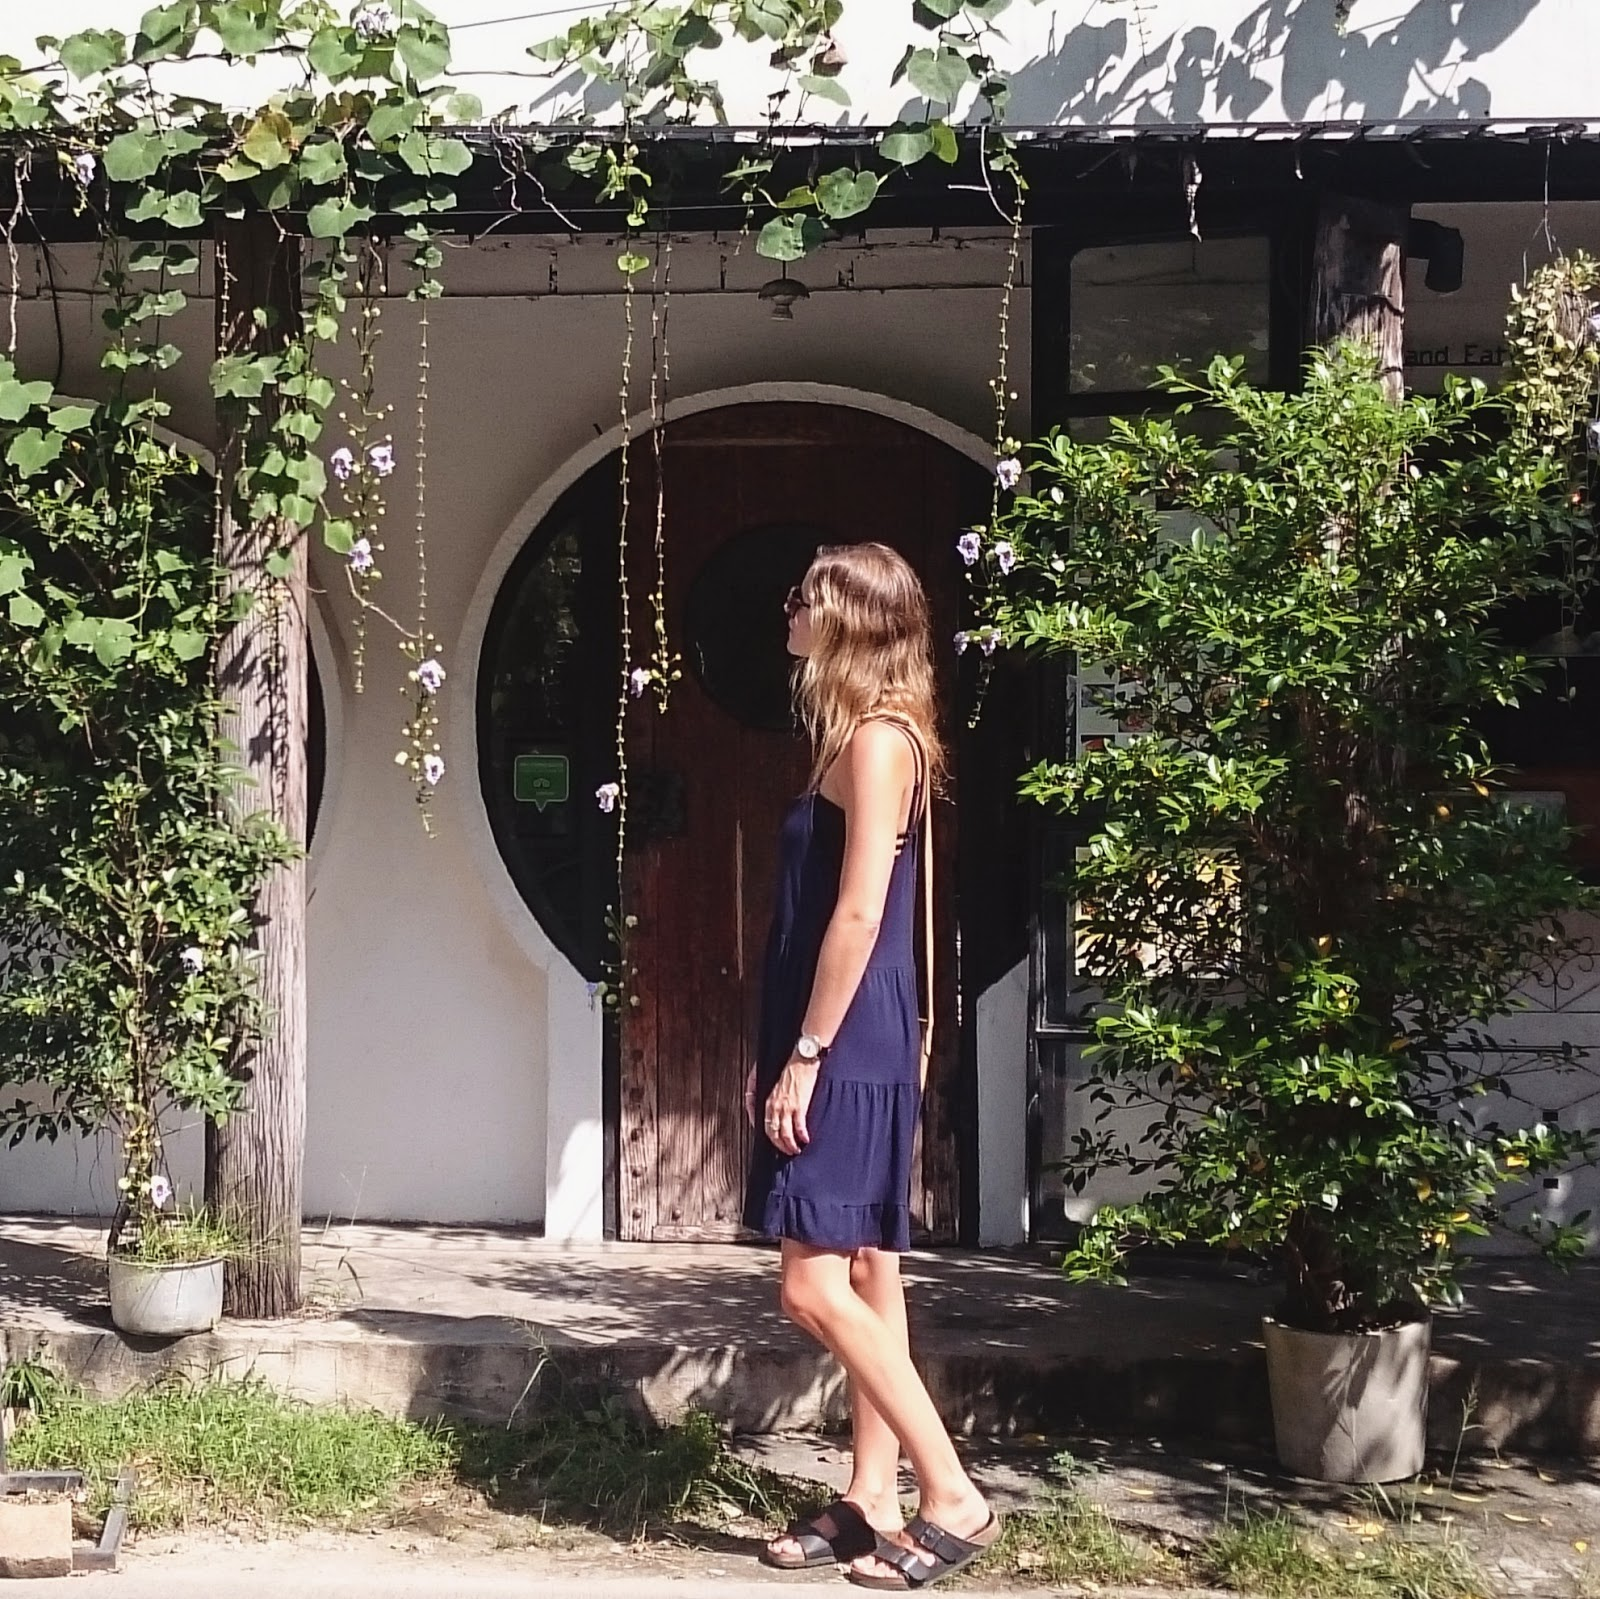 Travel blogger and digital nomad, Alison Hutchinson, is standing in front of a picturesque restaurant in Chiang Mai, Thailand